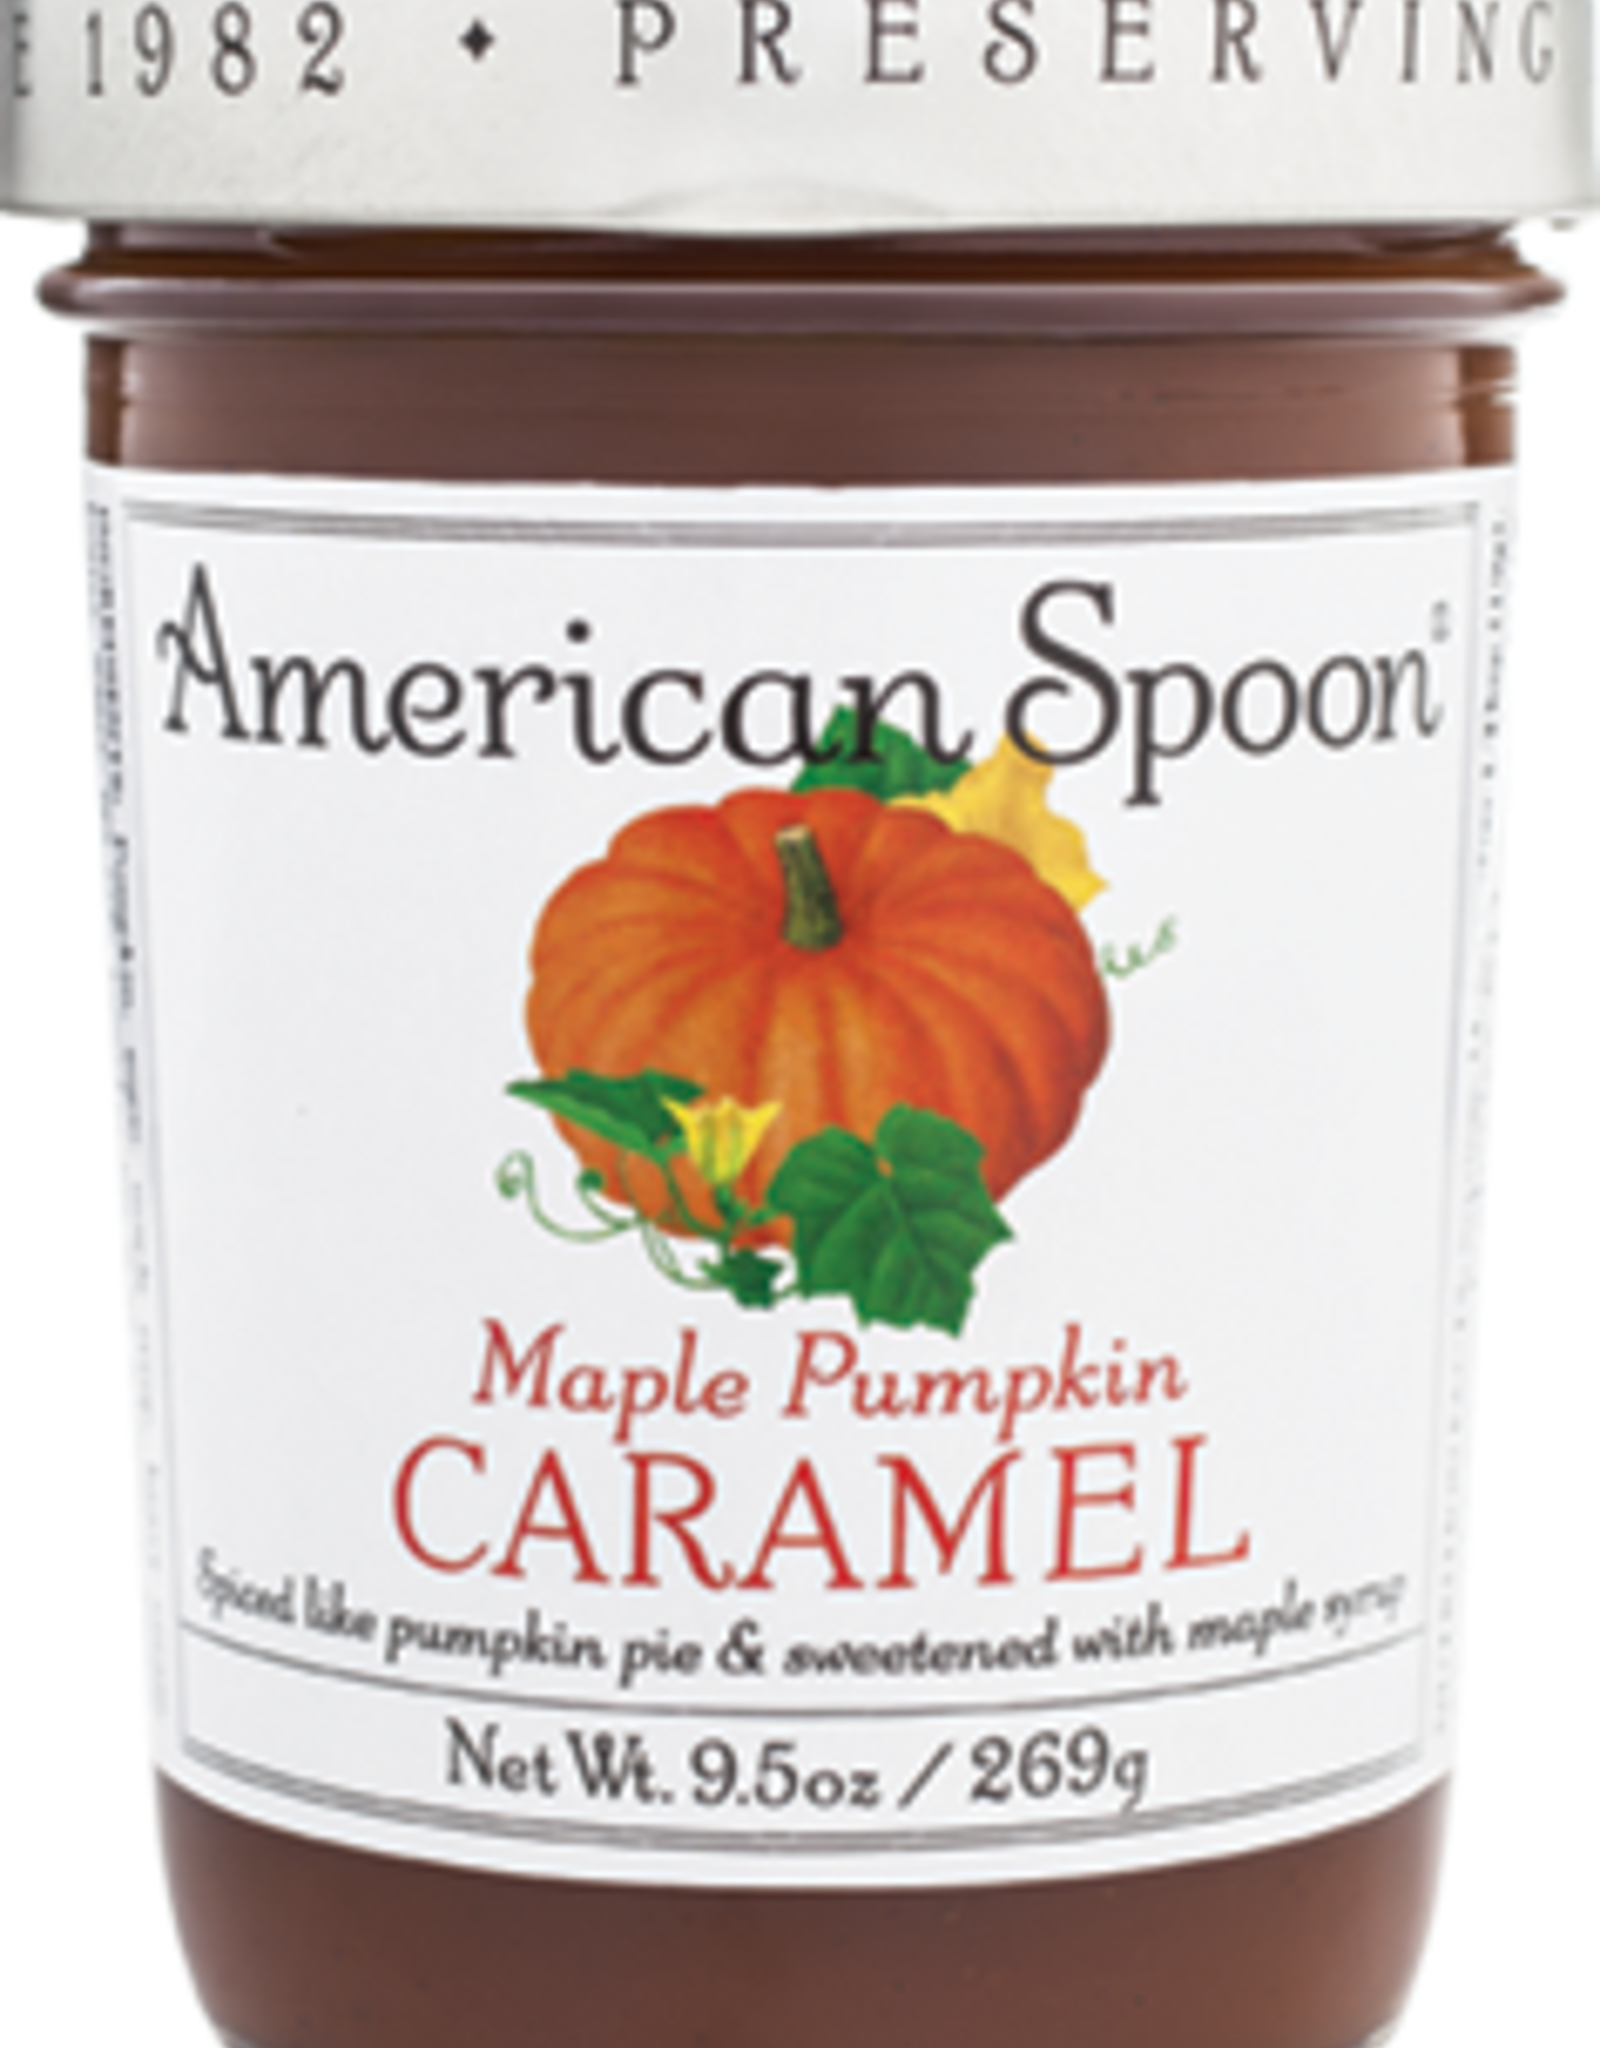 American Spoon AMERICAN SPOON MAPLE PUMPKIN CARAMEL